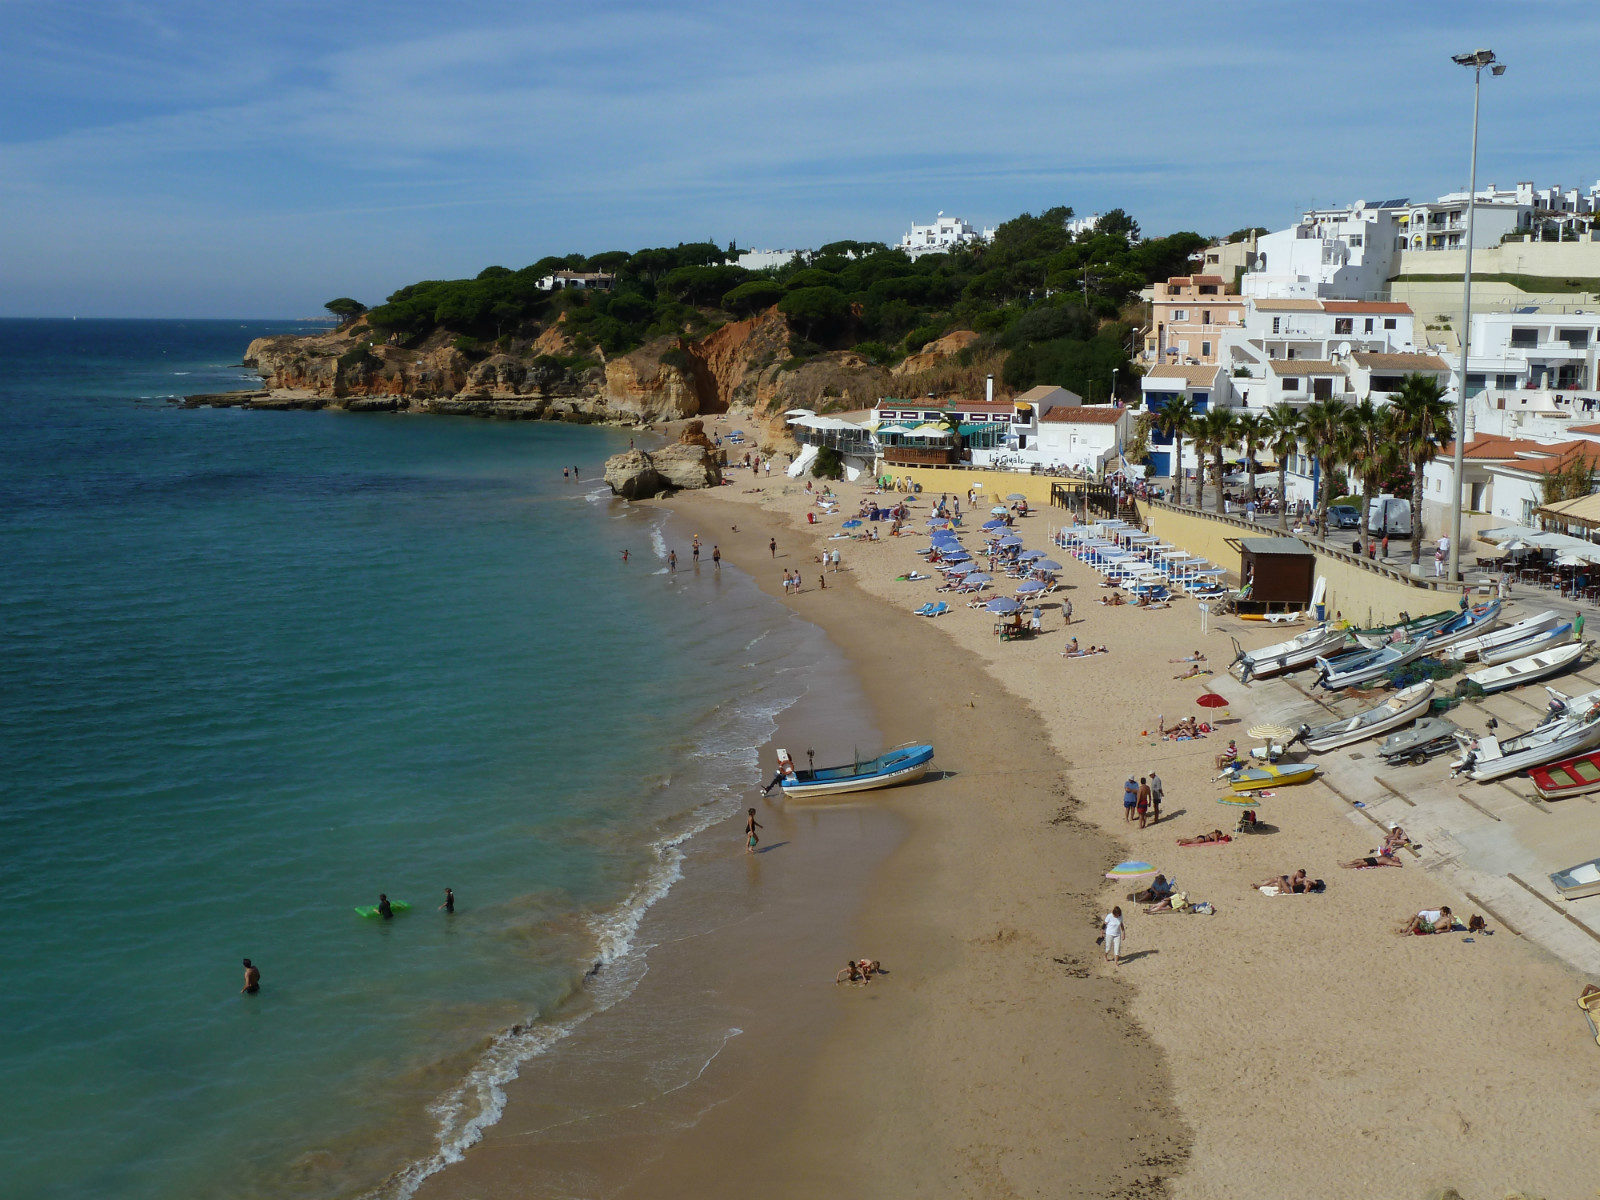 Albufeira - Olhos de Agua, a beautiful Blue Flag fisherman's beach and town.